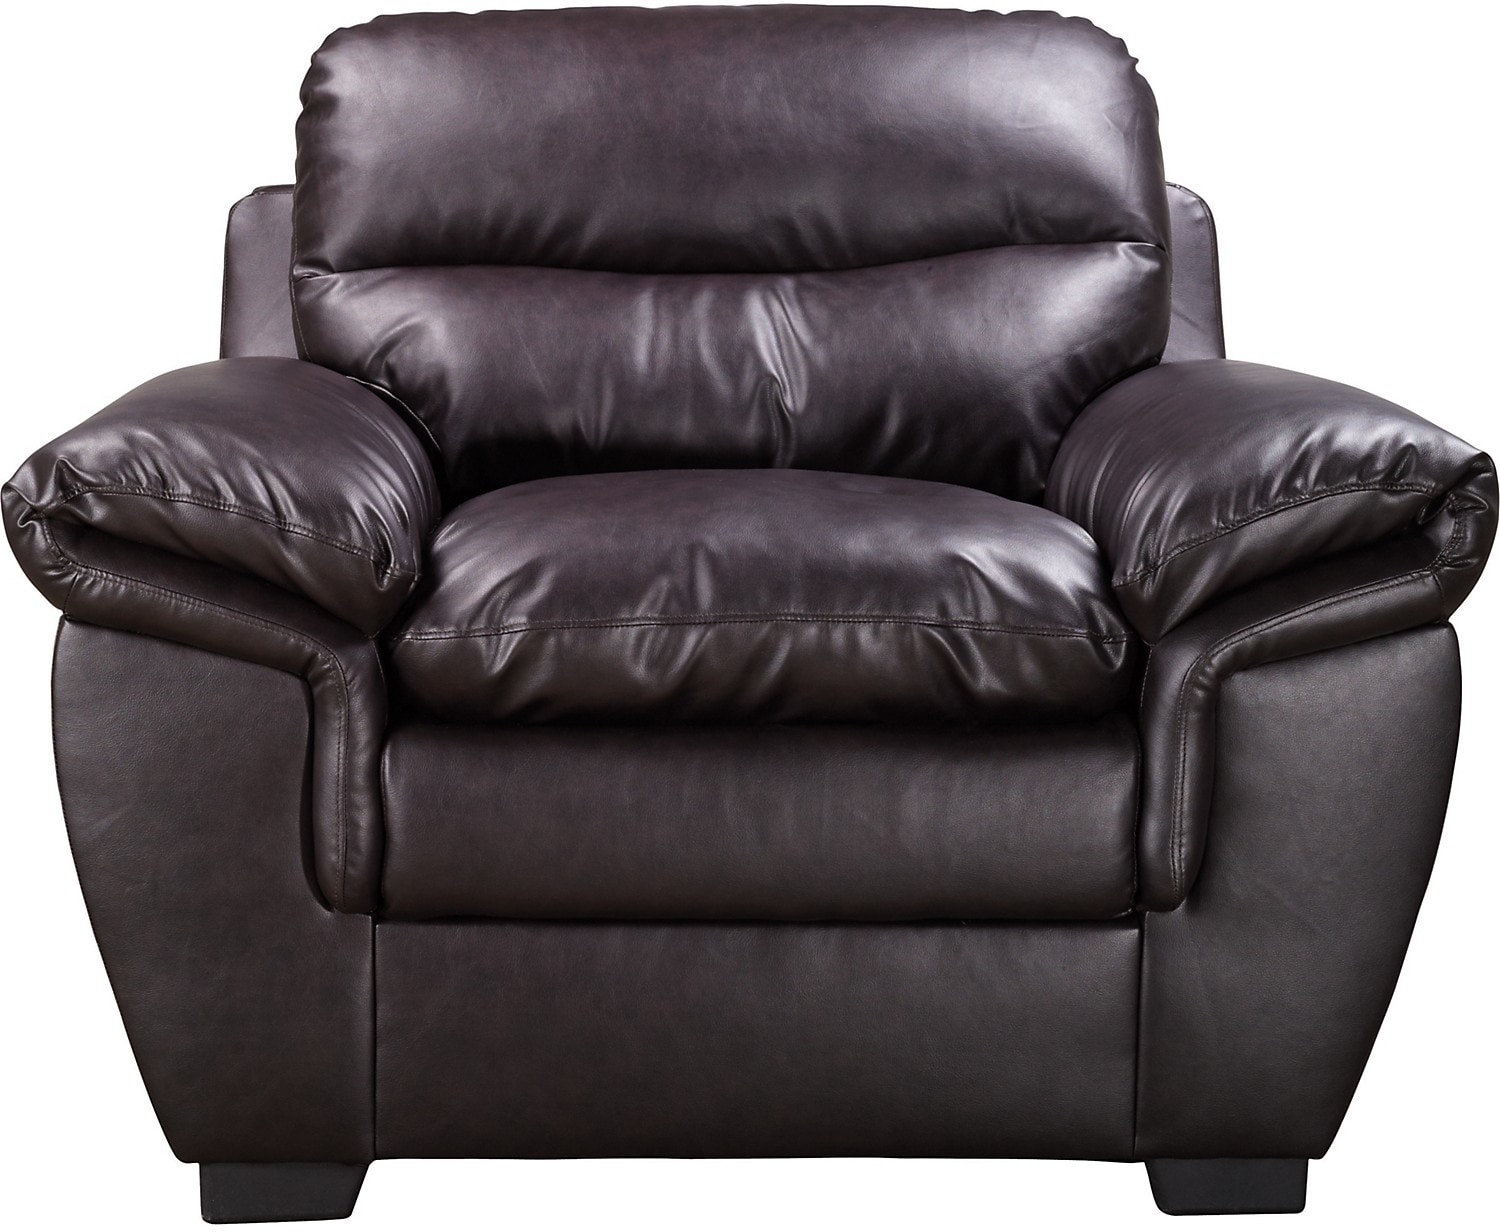 Living Room Furniture - E6 Brown Bonded Leather Chair